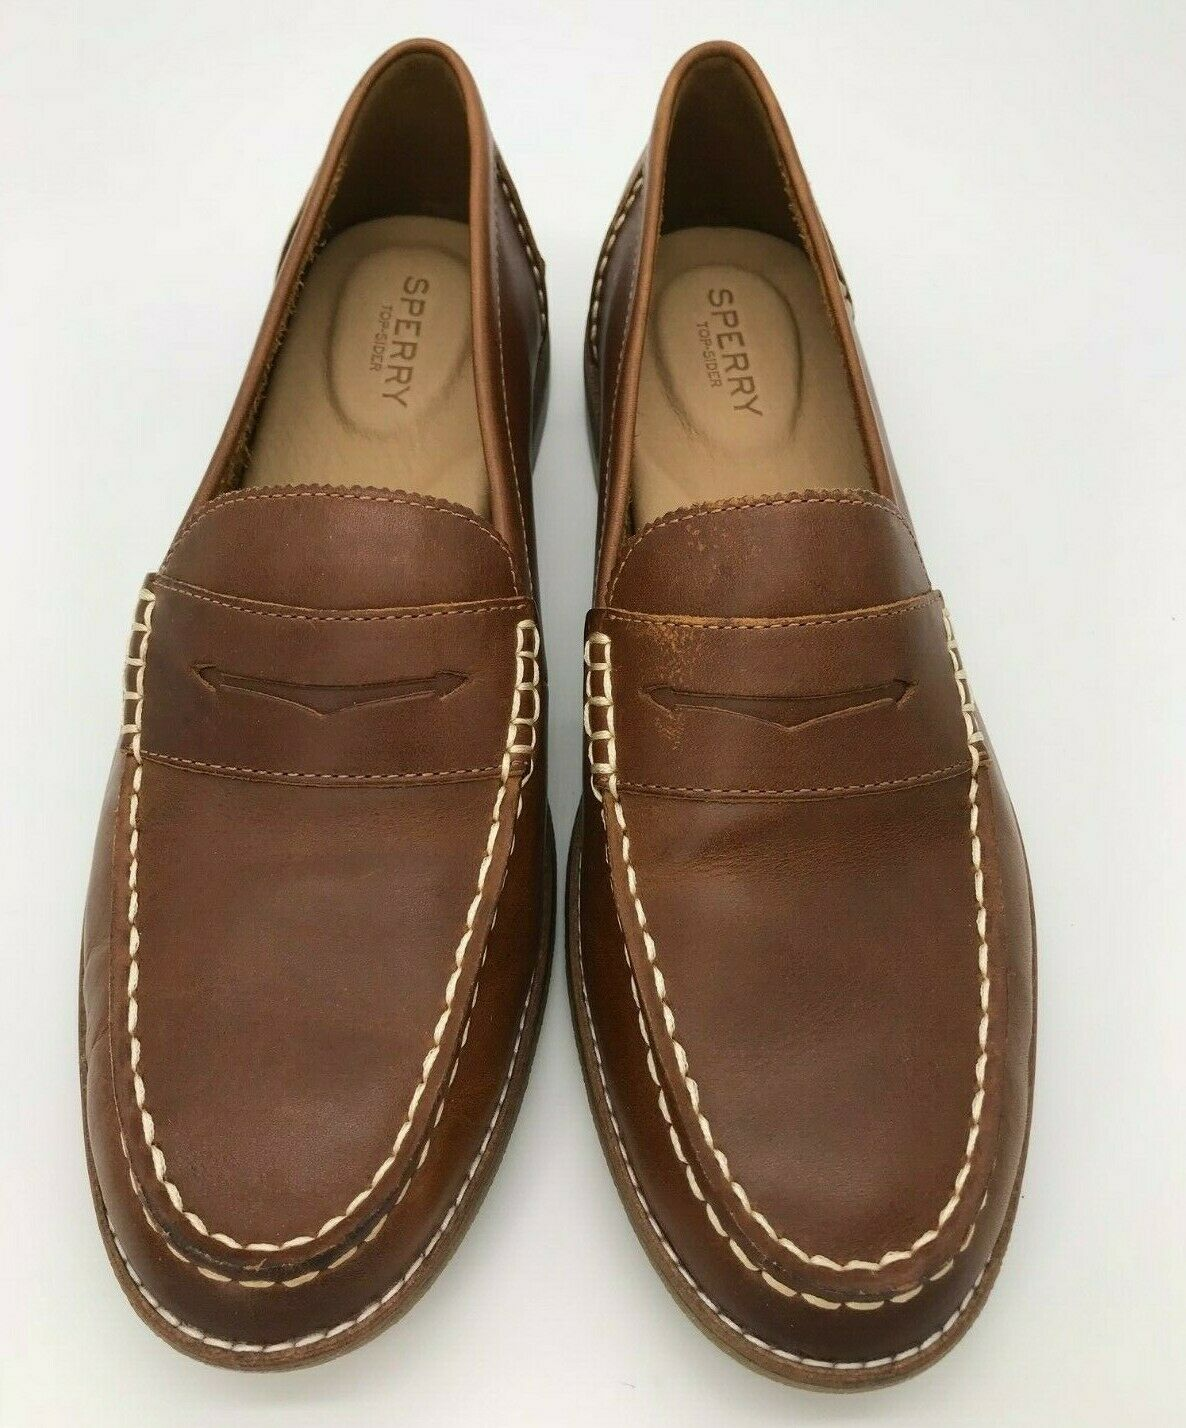 Sperry Women's Seaport Penny Loafer, Tan, Size 10 M US, STS81928